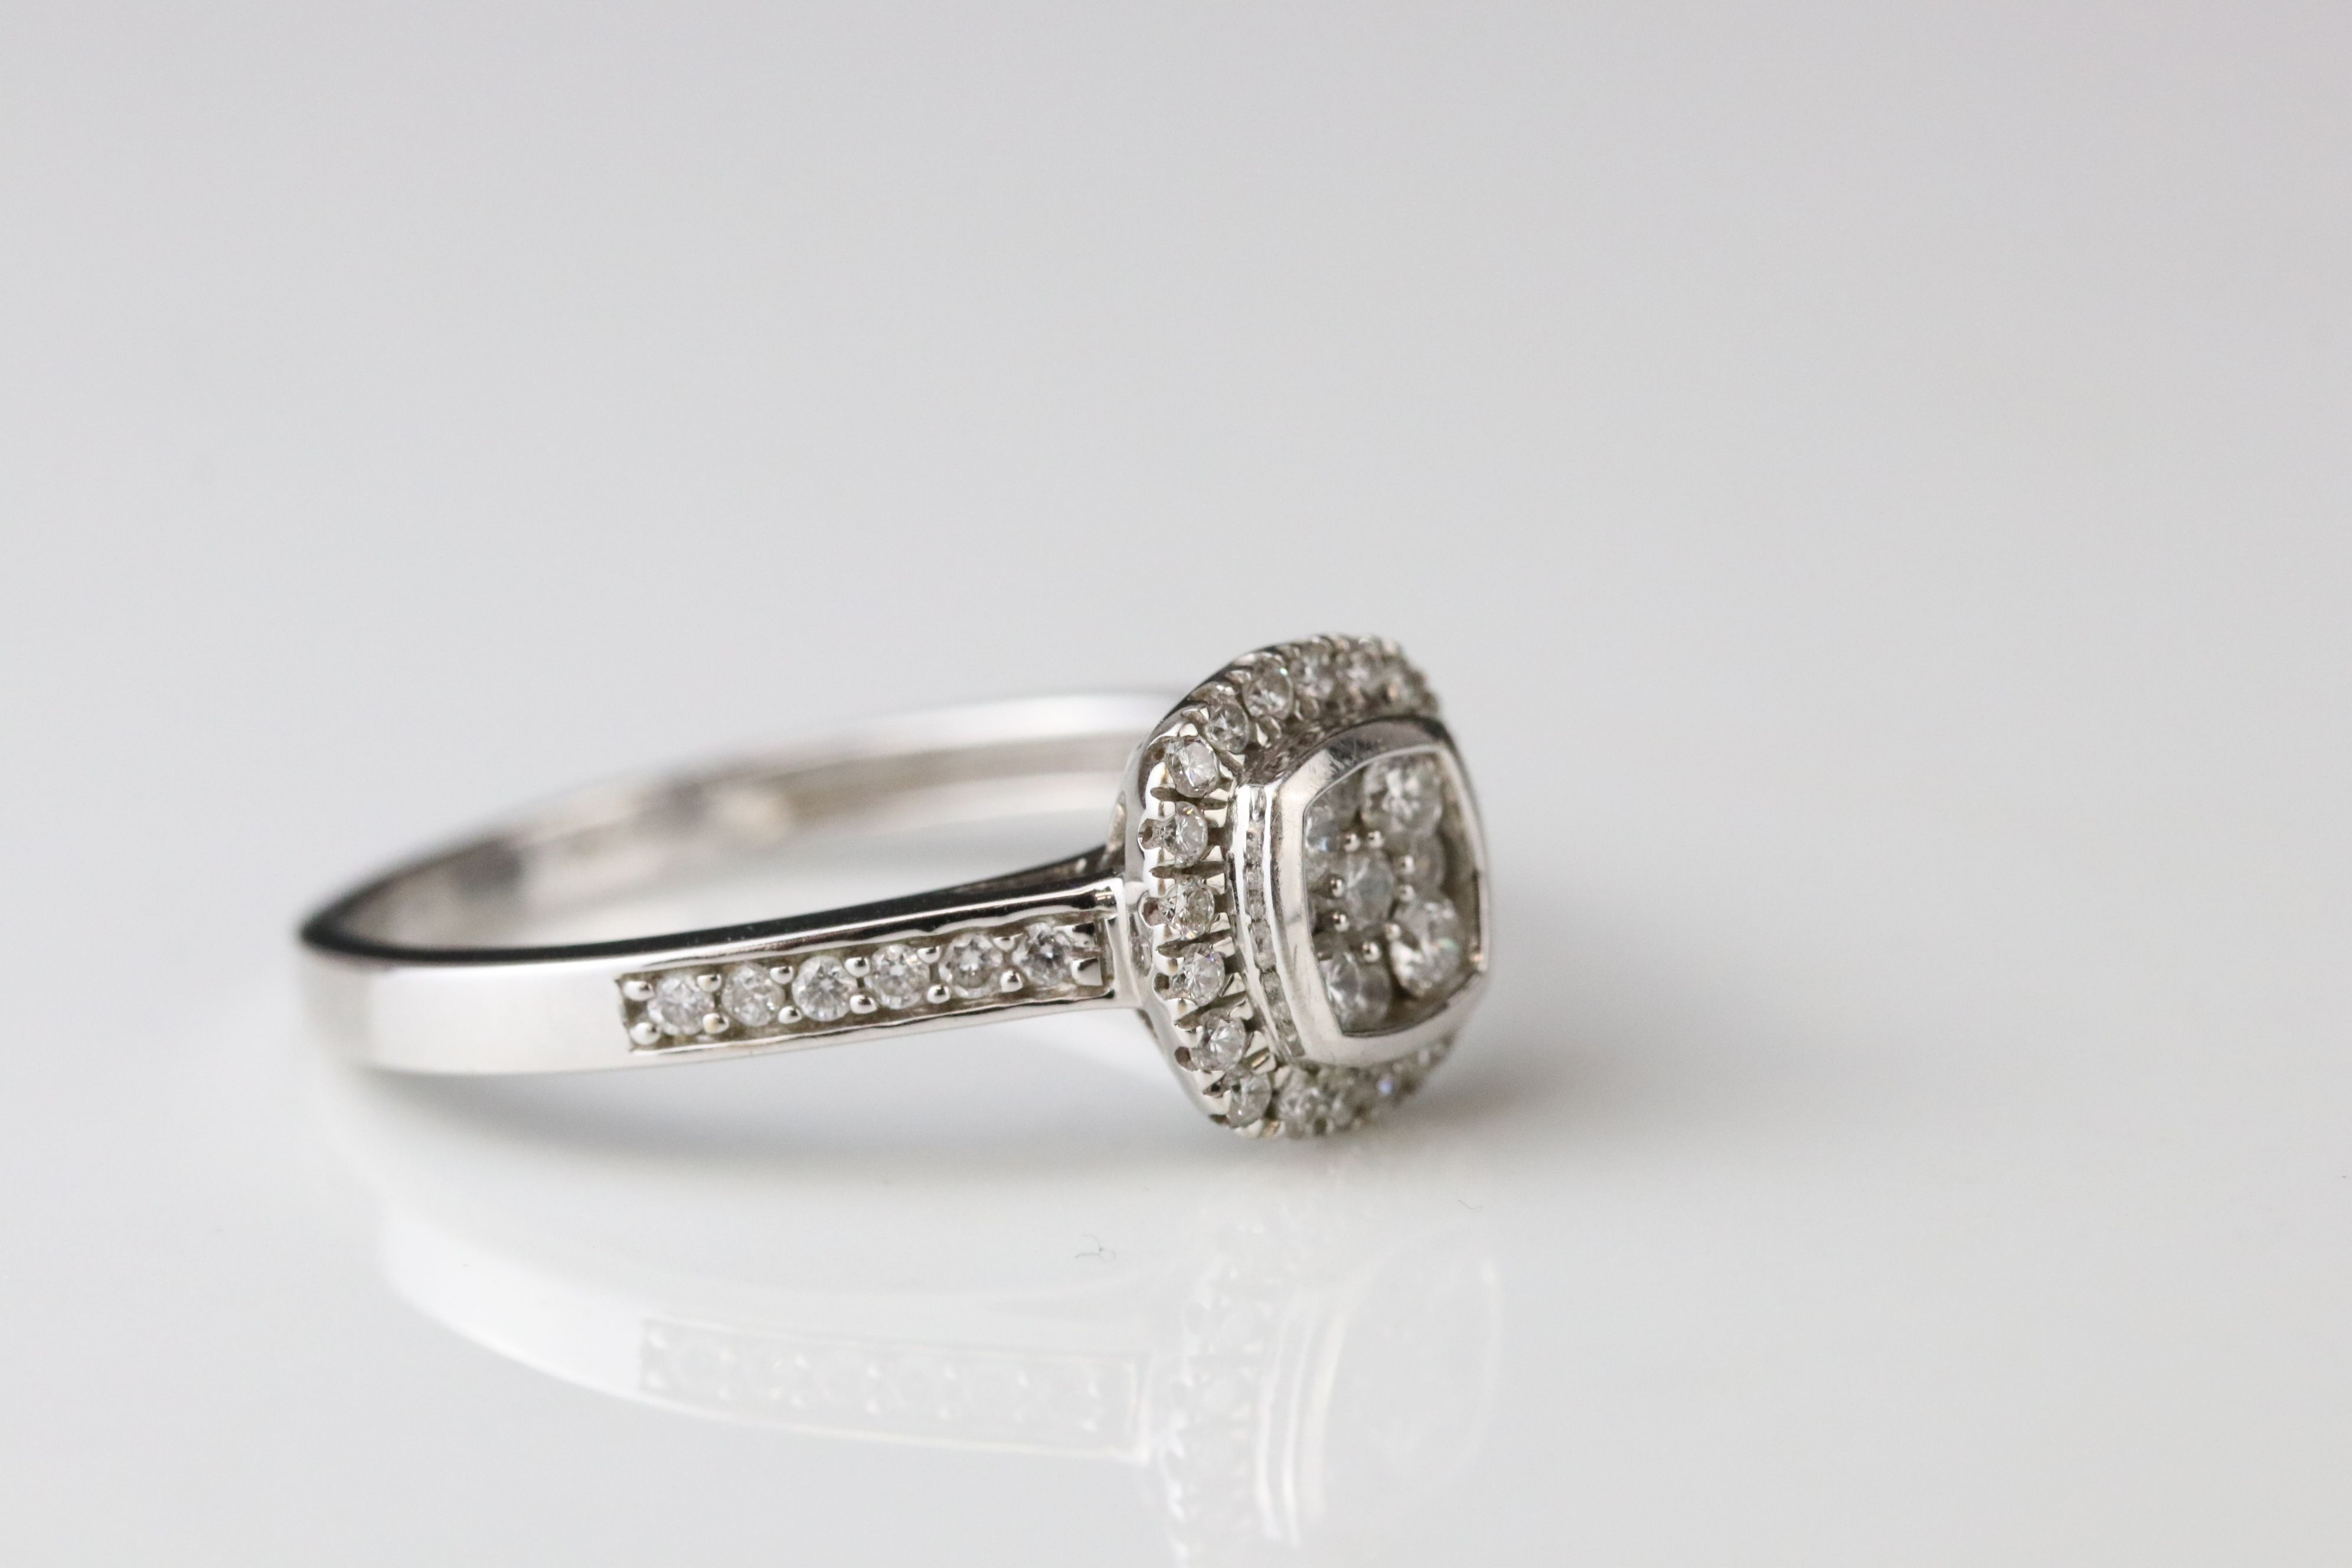 Diamond cluster 18ct white gold ring, nine small round brilliant cut diamonds to central cluster, - Image 2 of 3